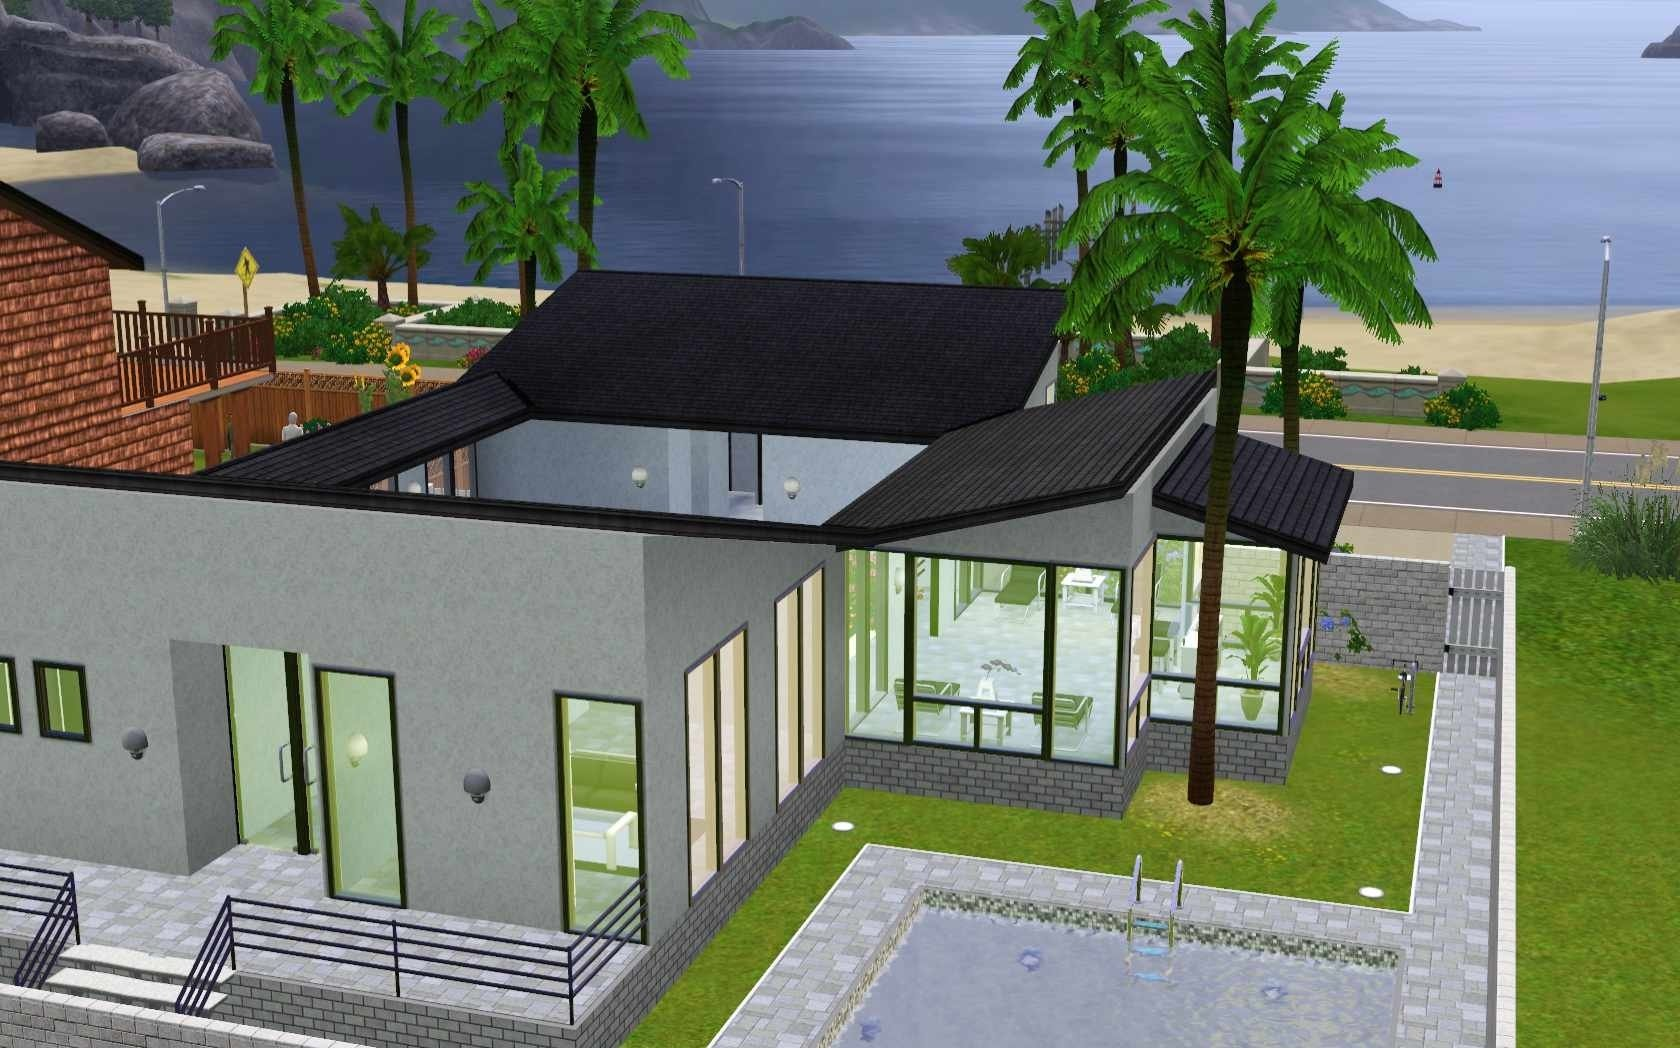 10 Stylish House Ideas For Sims 3 the sims 3 room build ideas and examples 5 2021